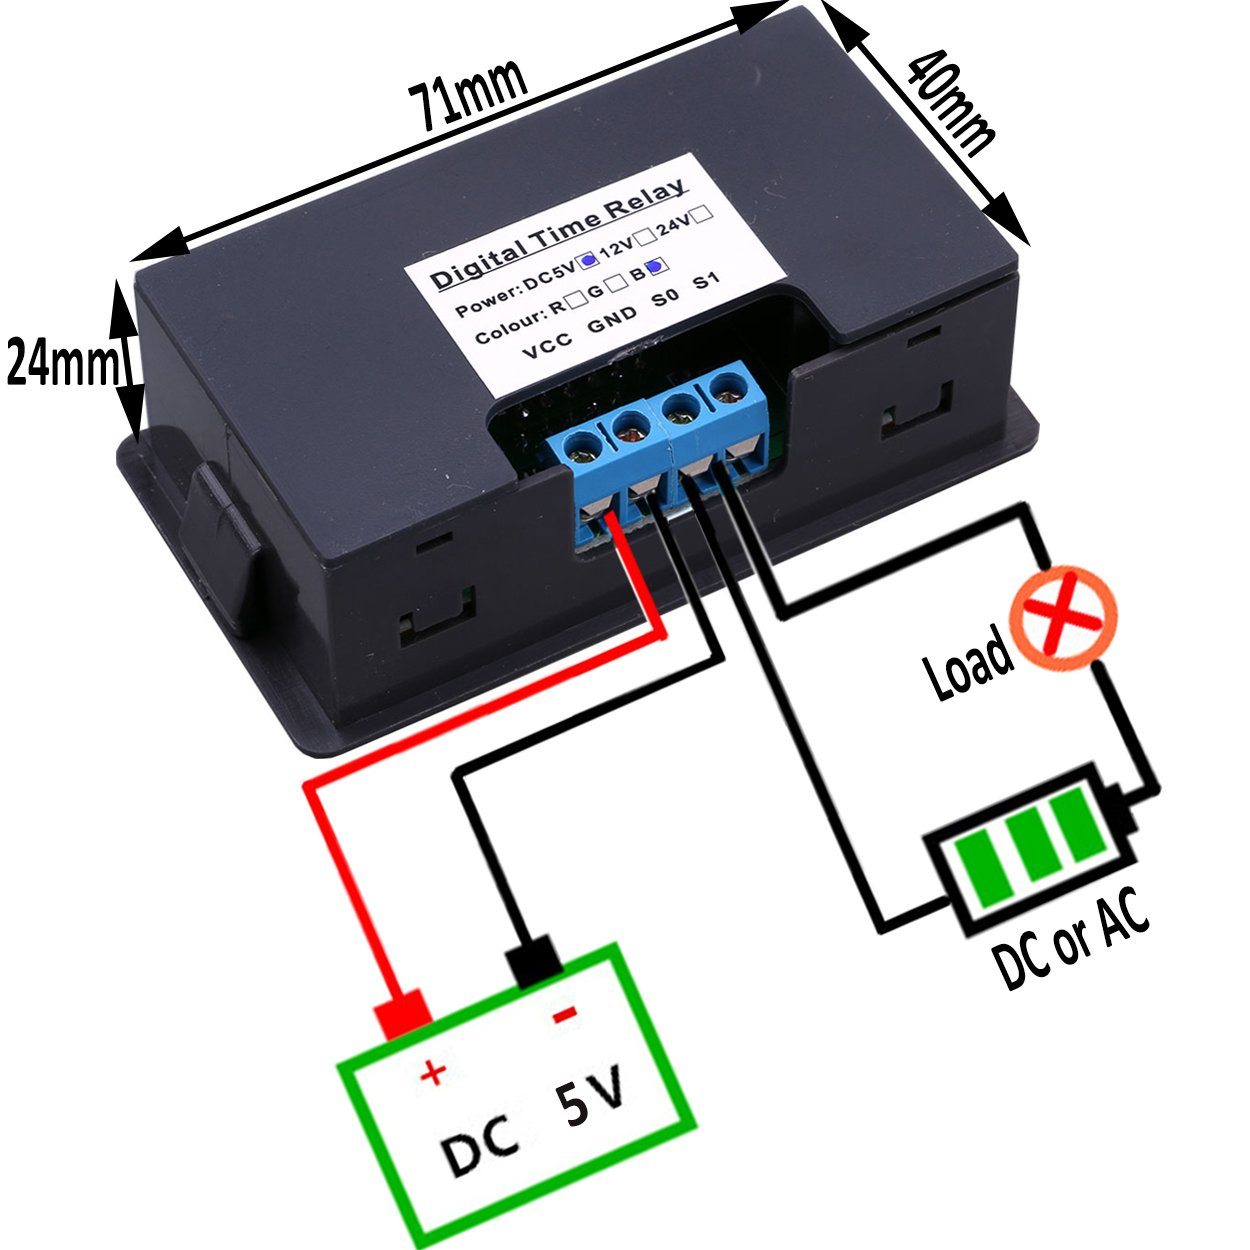 Yeeco Dual Digital Display Red Blue Led Dc 5v Timer Normally Open Off Delay Relay Board 1500w 10a Max On Timing Switch Module For Automotive Car Vehicle